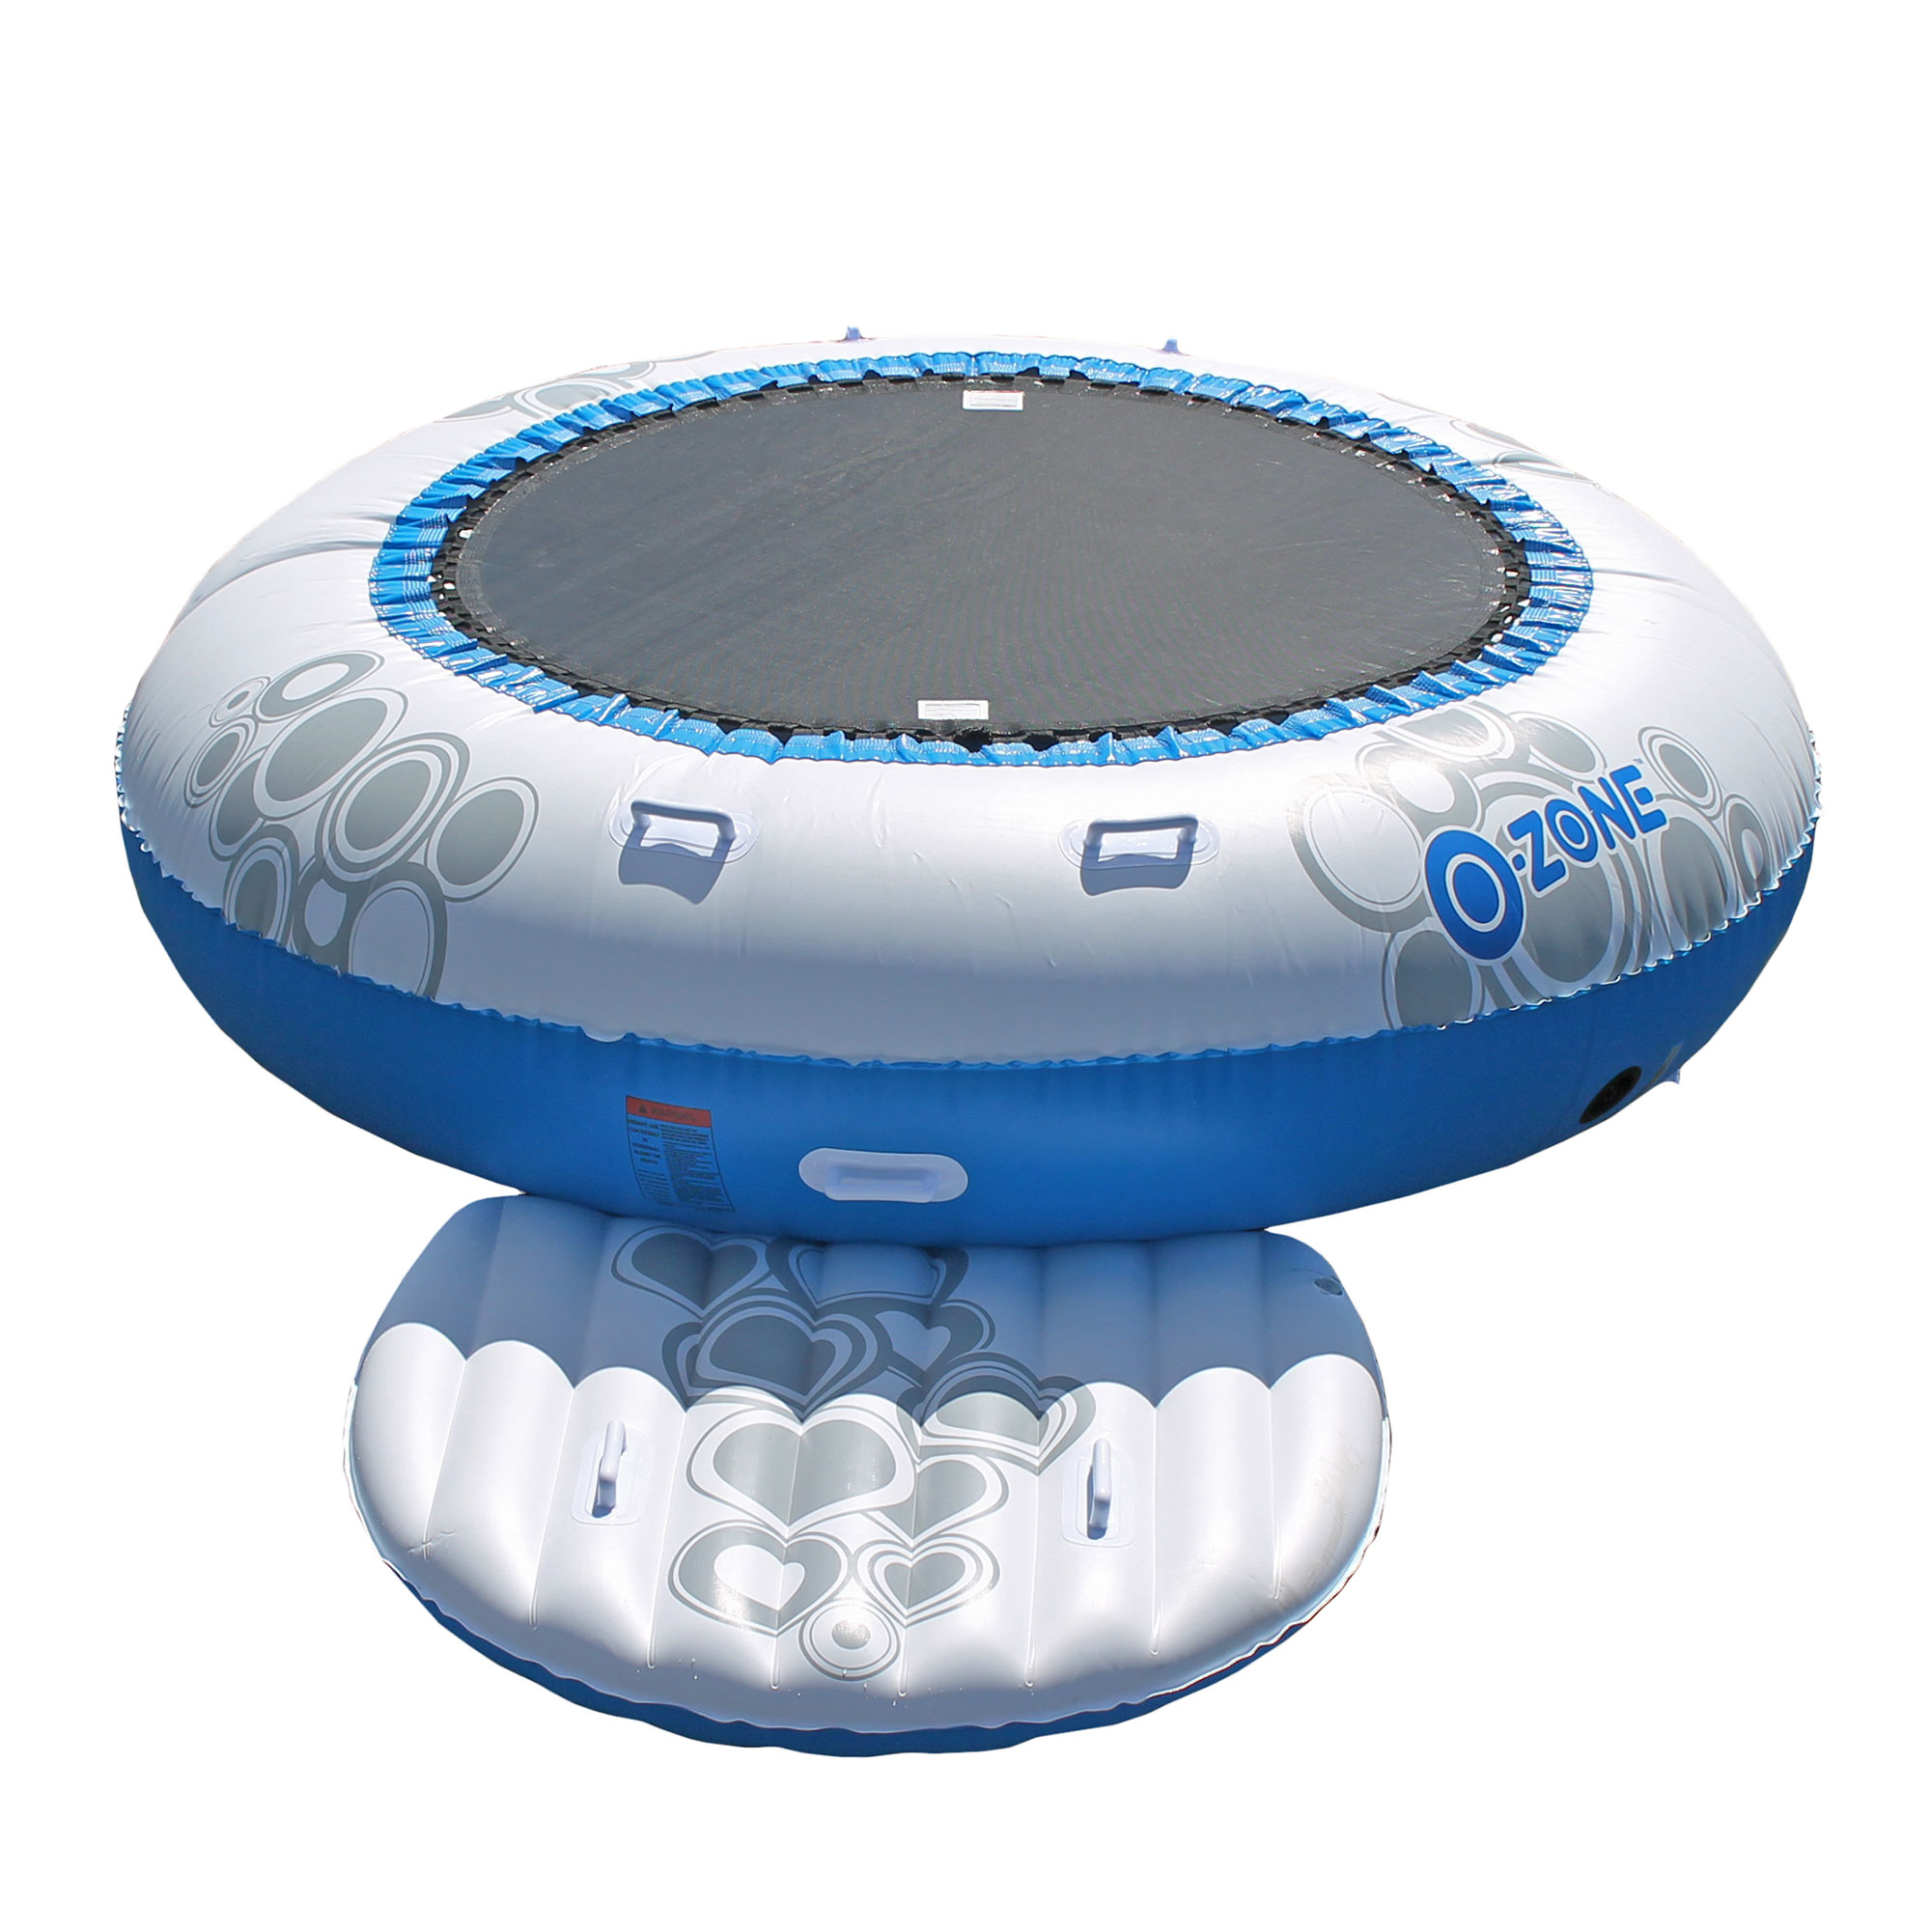 RAVE Sports Kids Inflatable Floating O Zone Lake House Water Jumper Bouncer